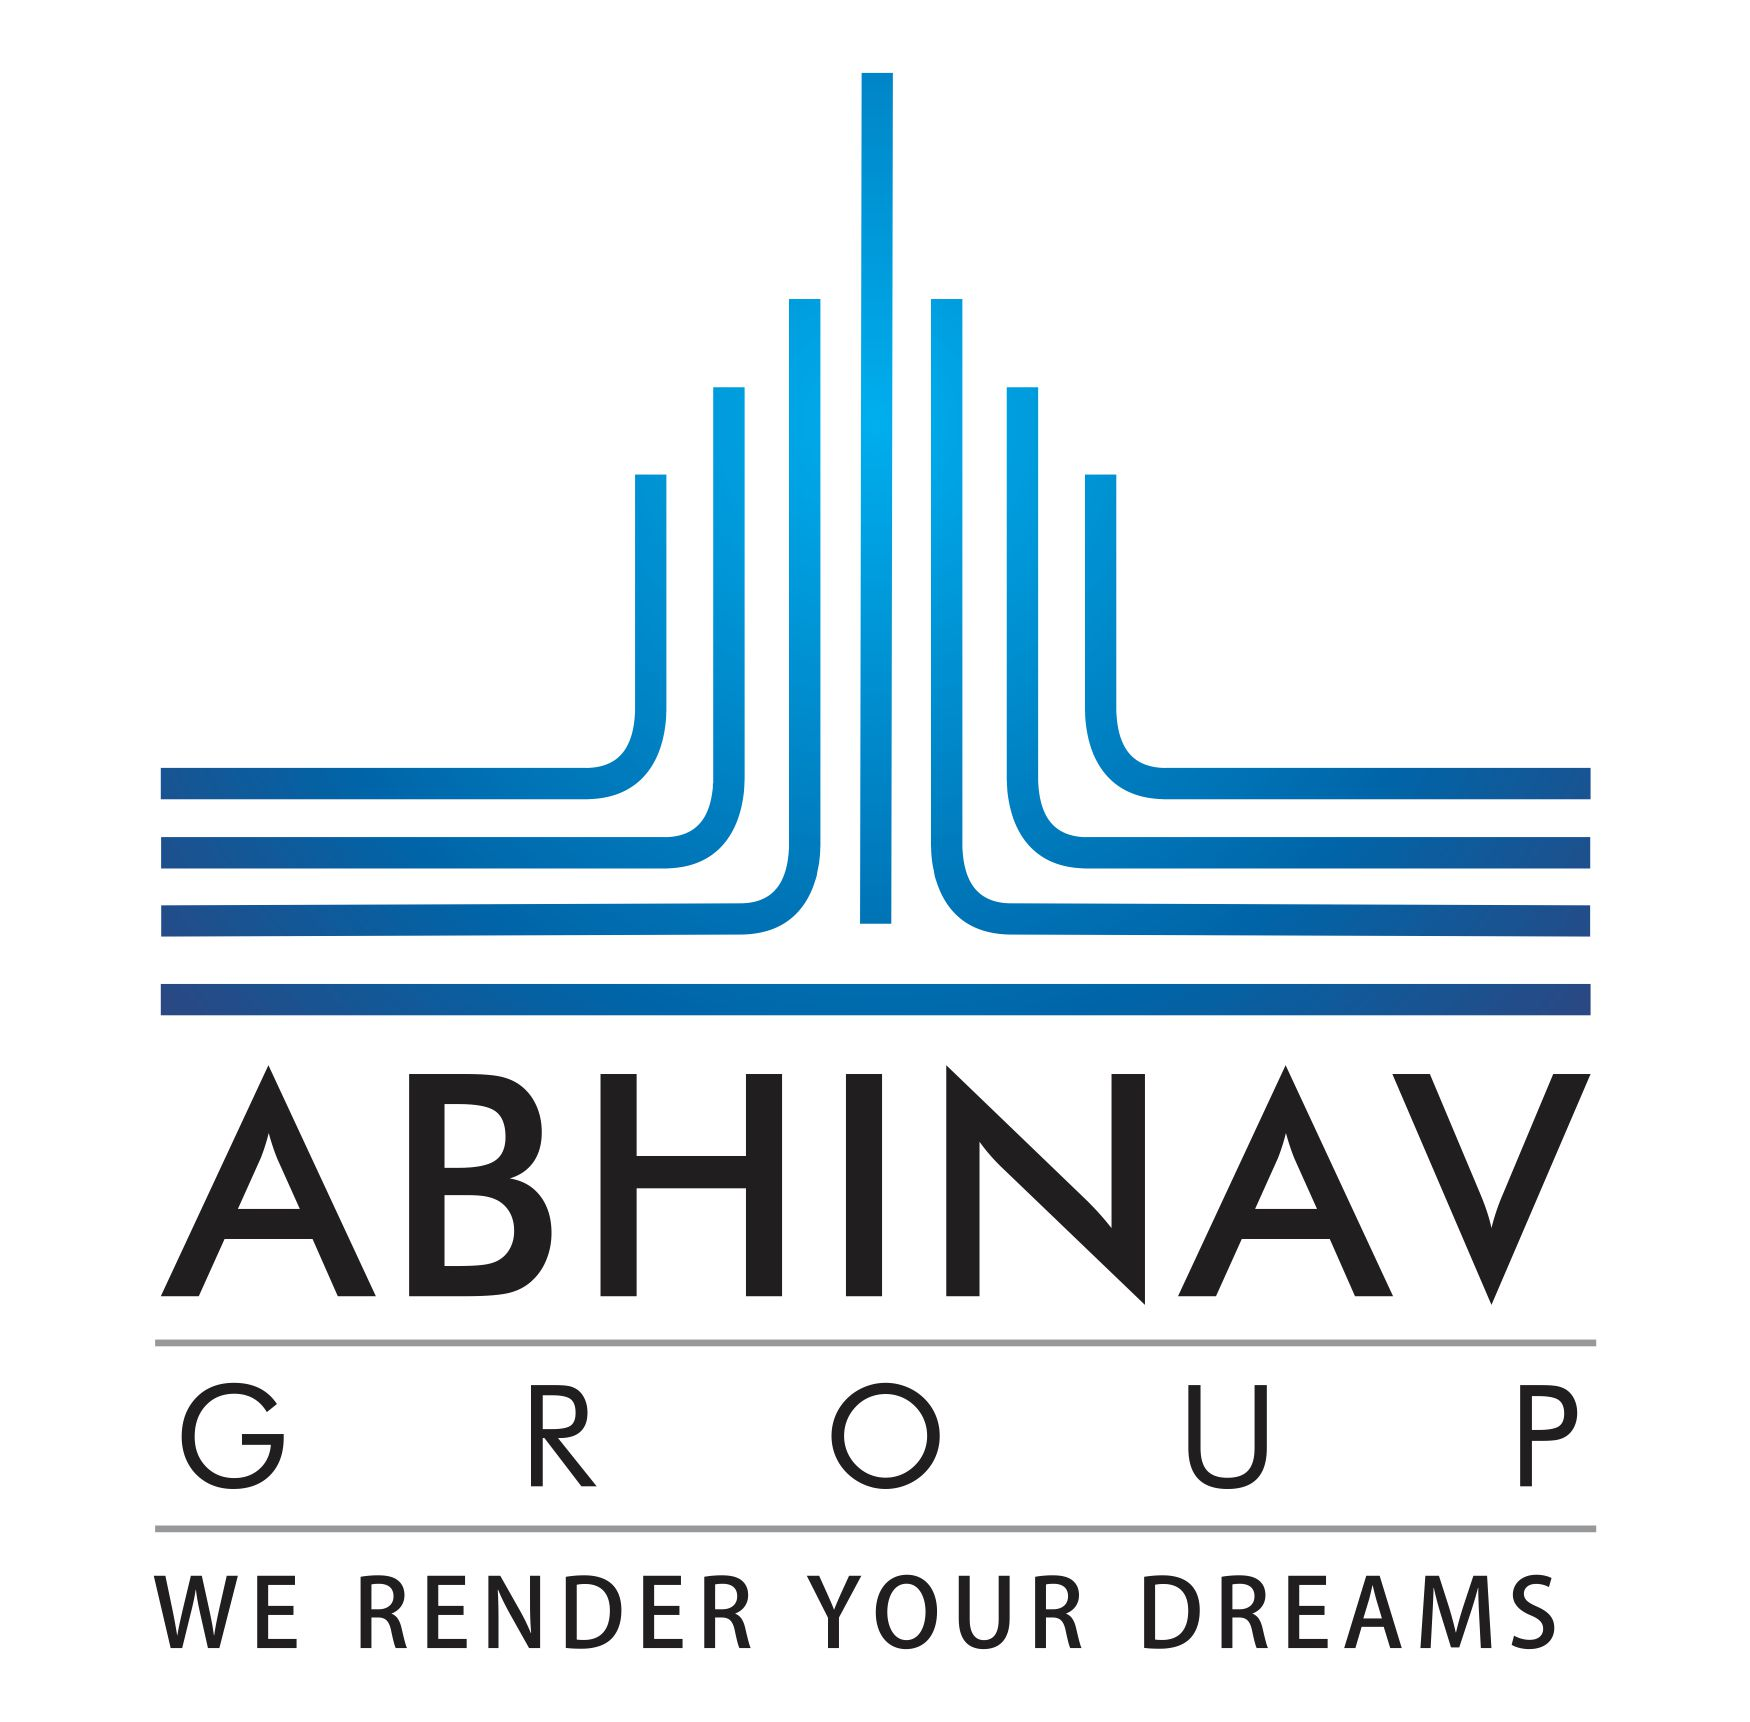 Abhinav Group